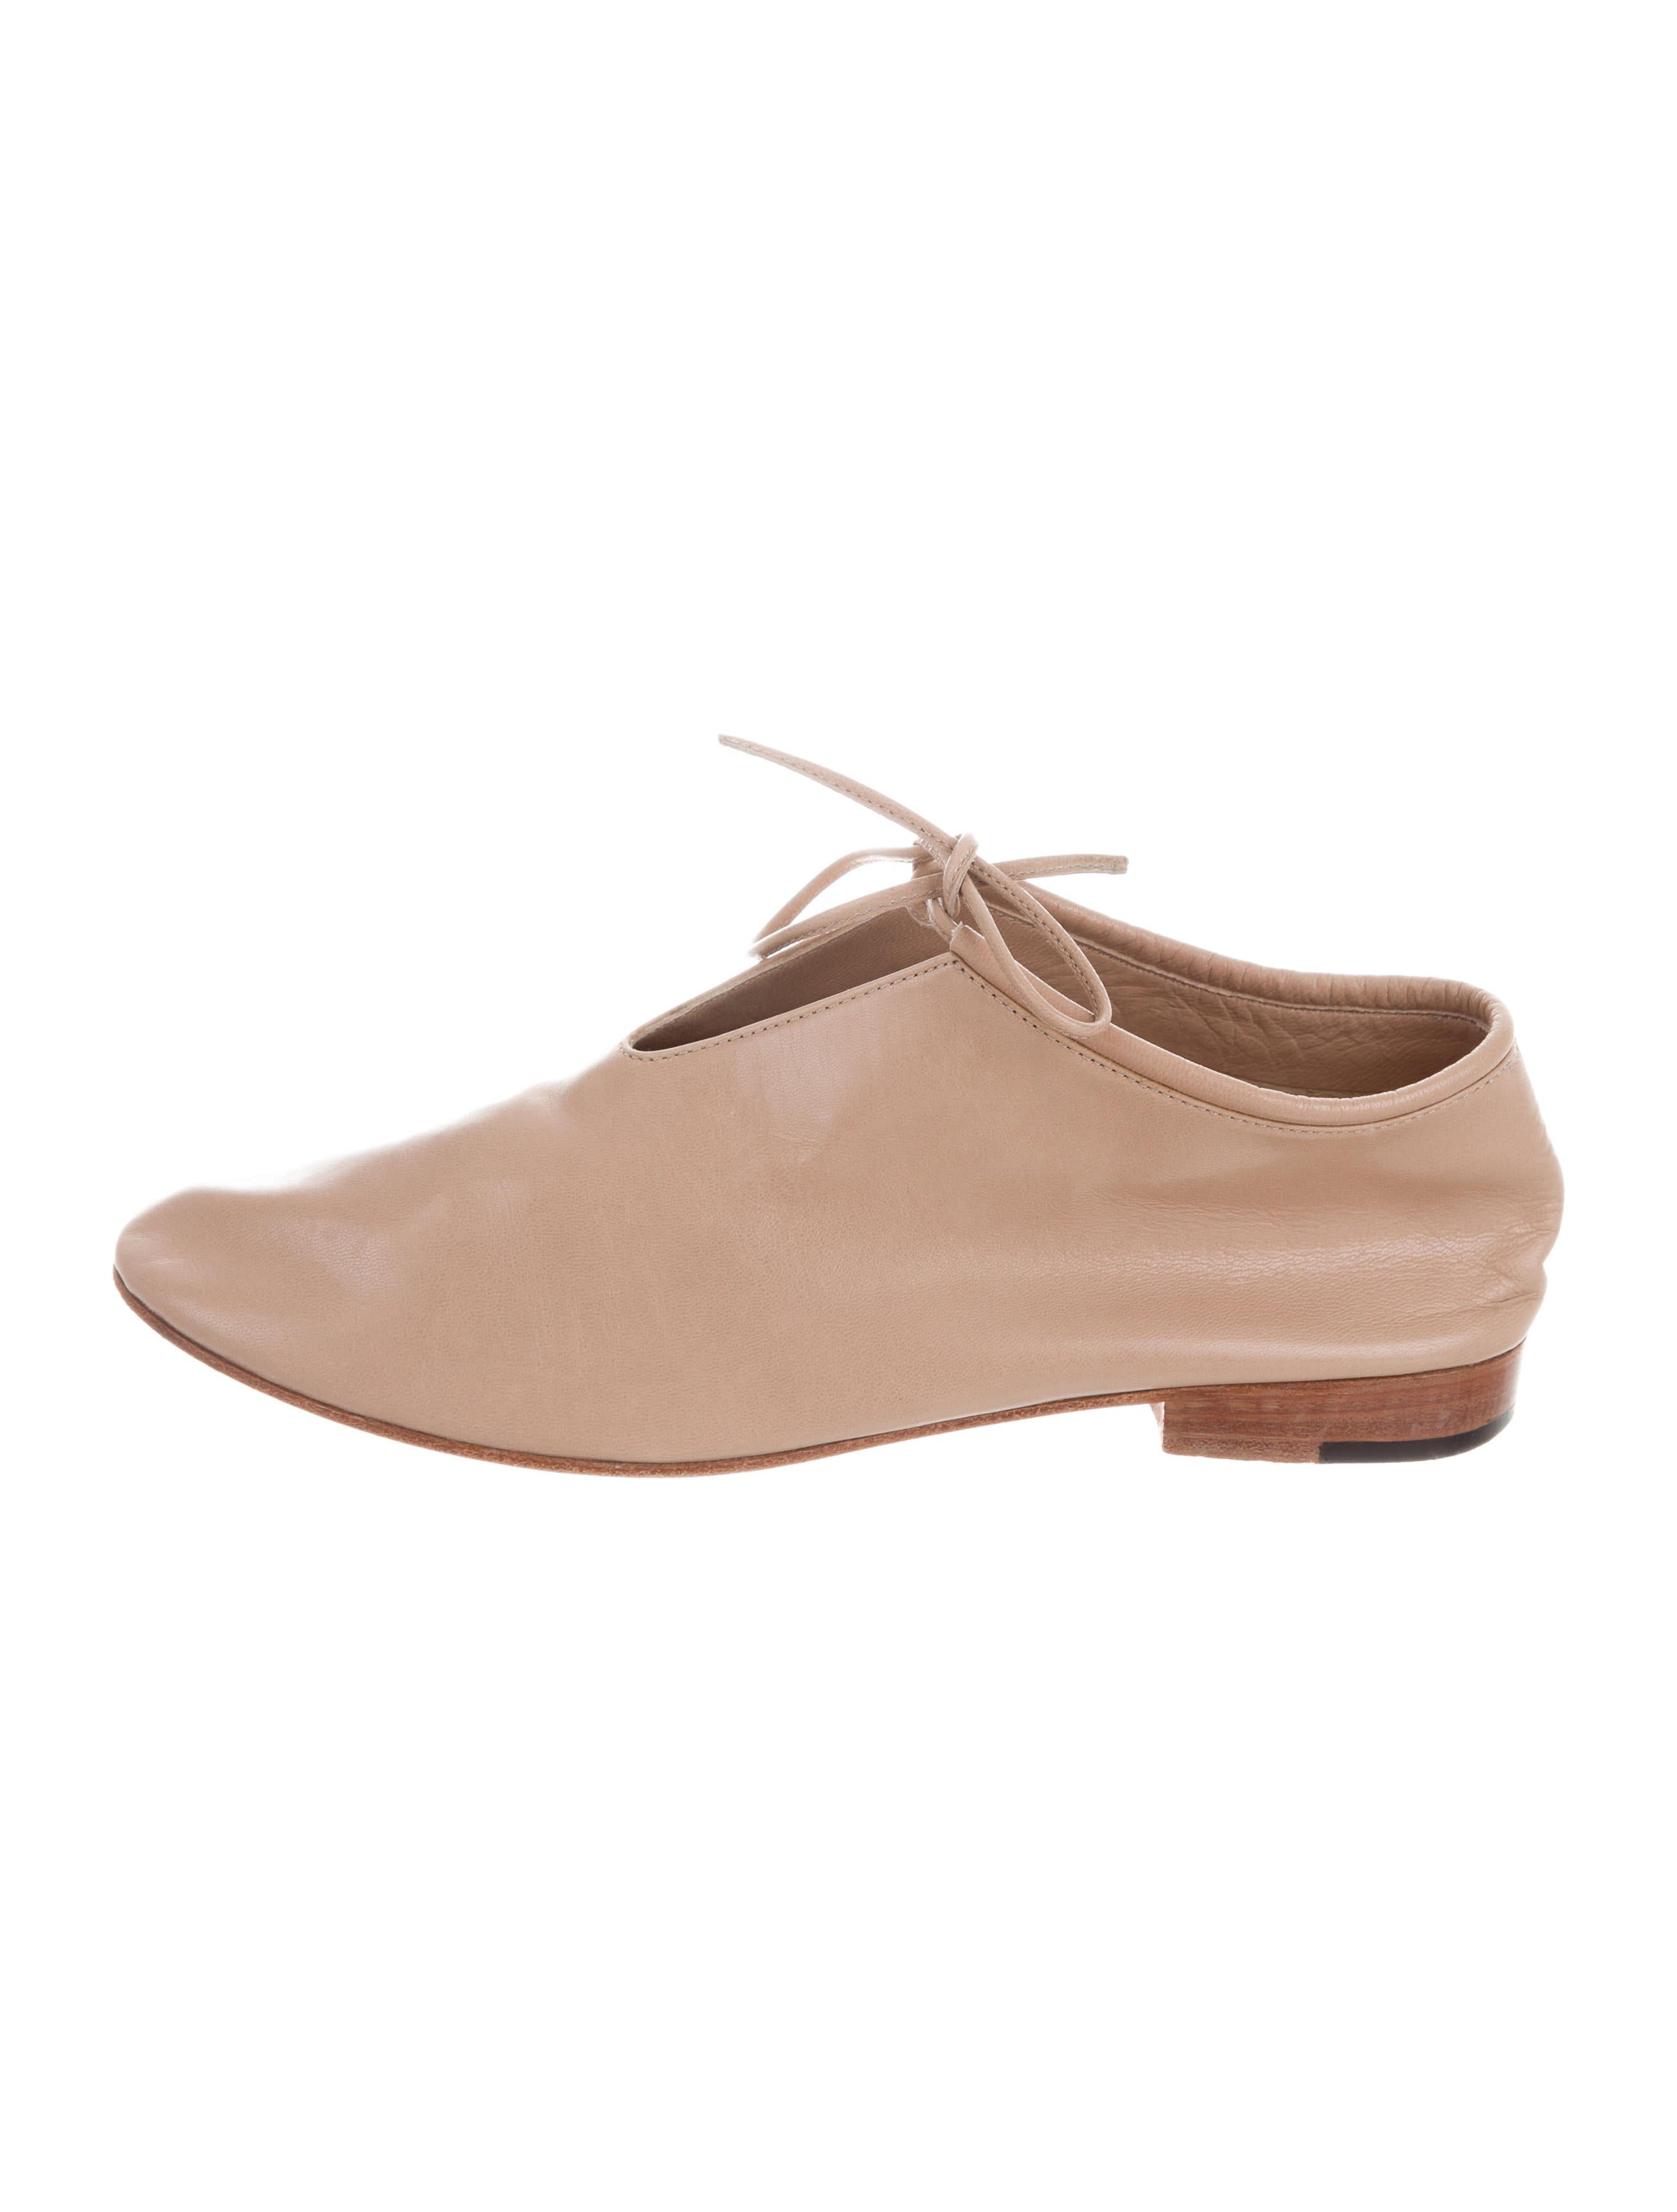 Martiniano Leather Round-Tie Flats discount official qm3WH